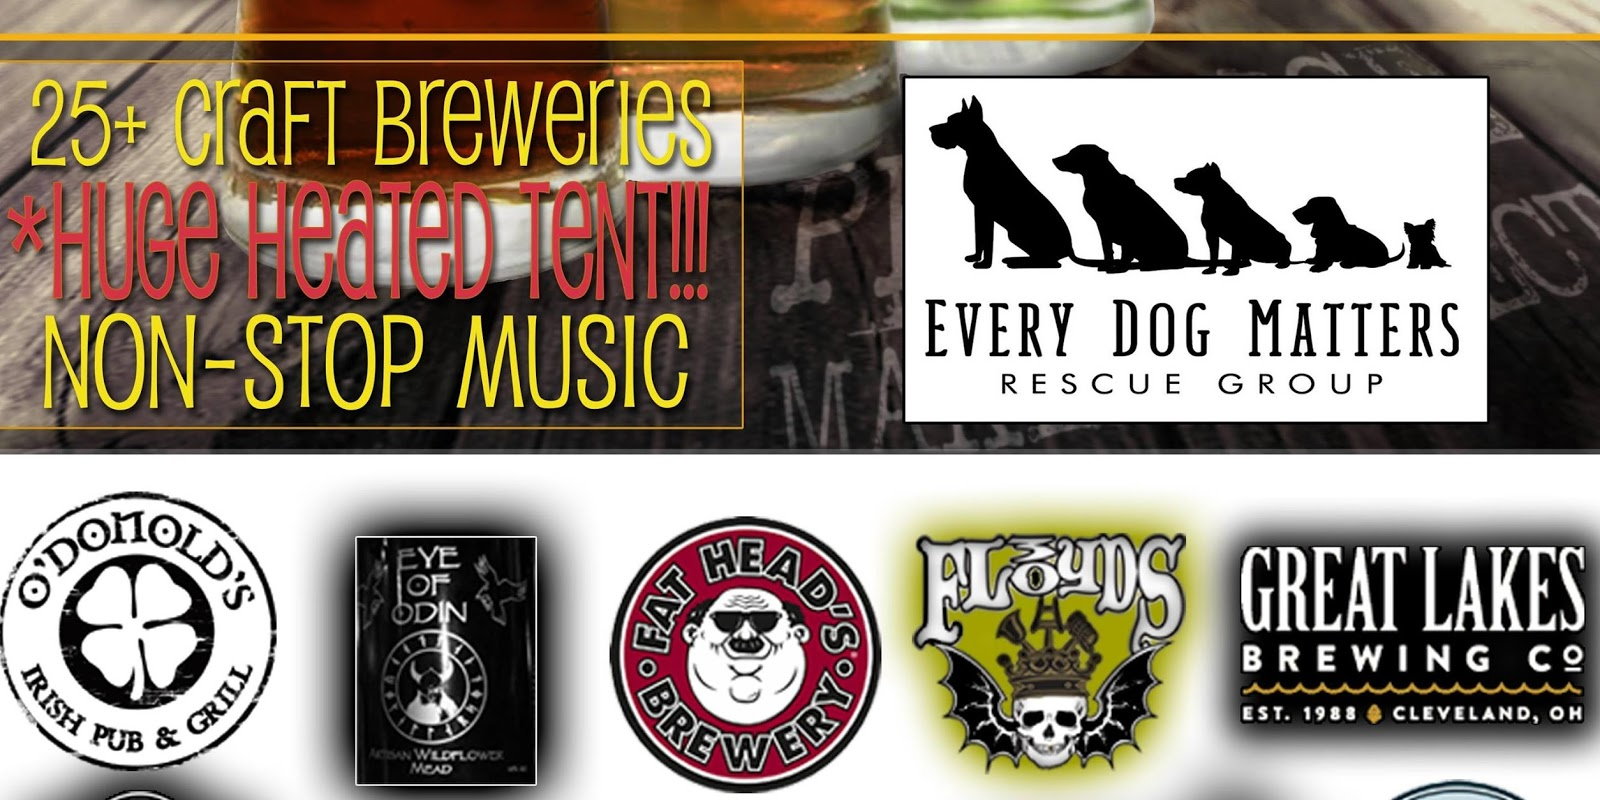 Every Dog Matters Rescue